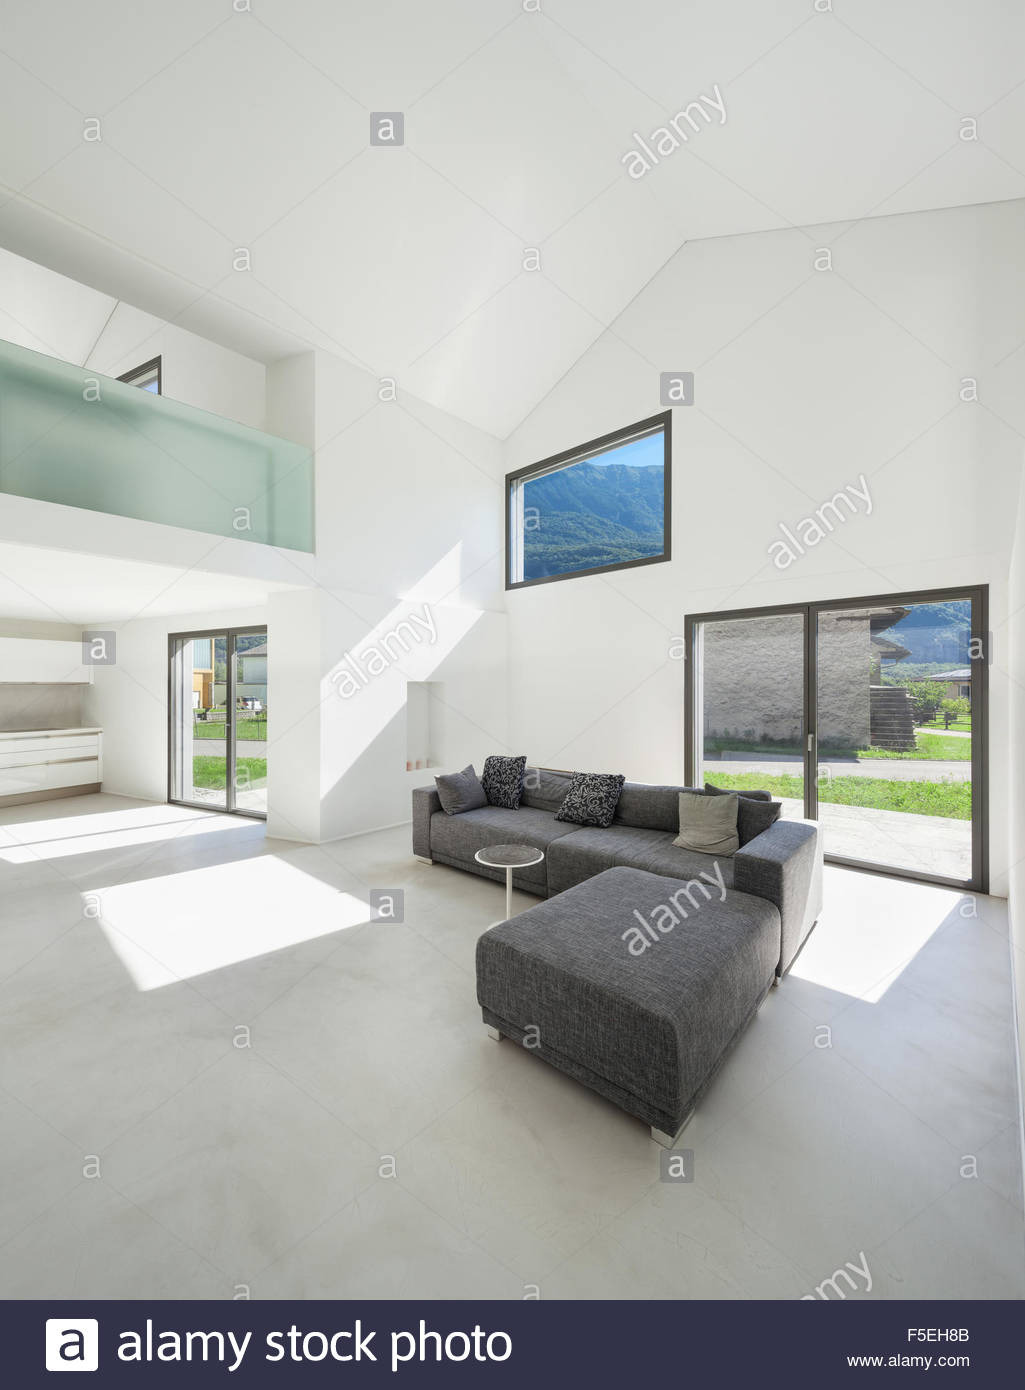 architecture interior modern house living room with sofa F5EH8B